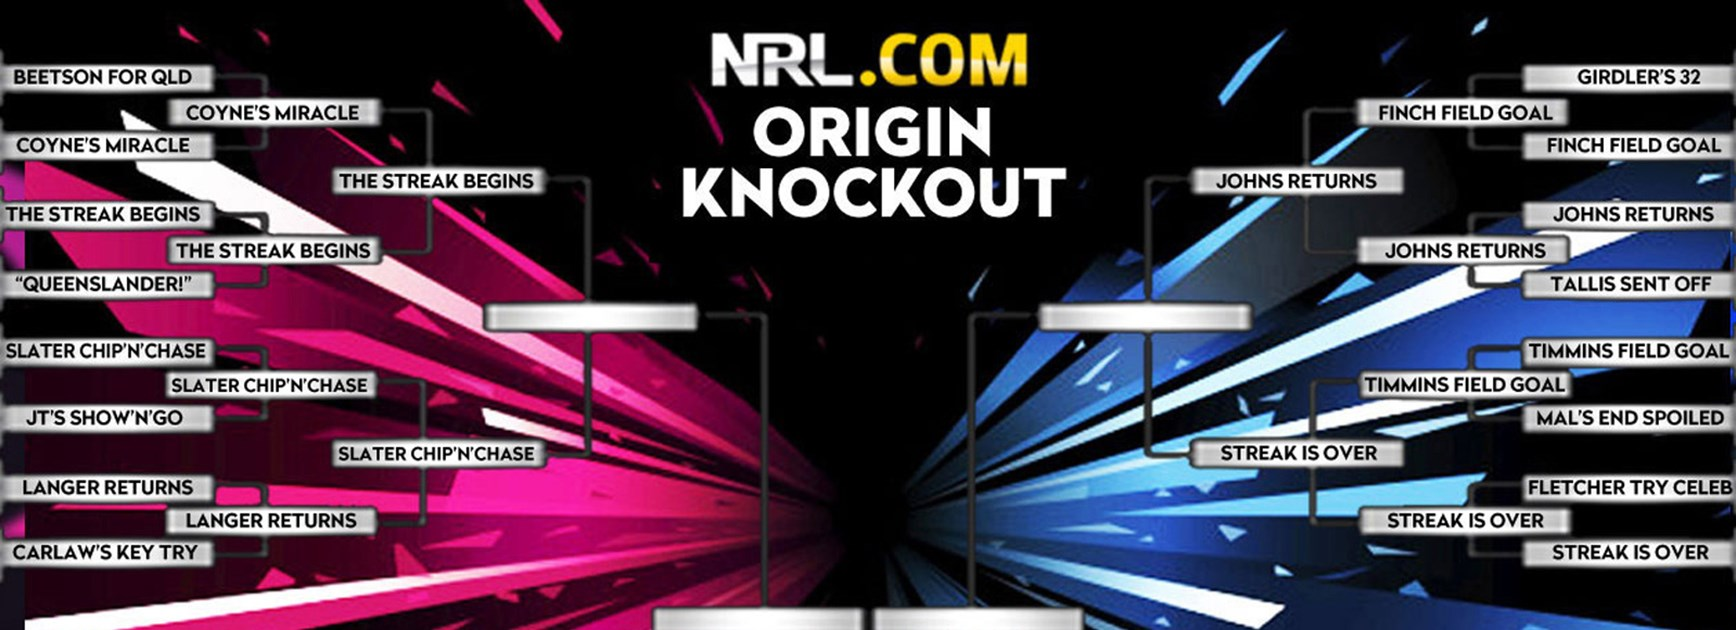 Just eight moments remain in NRL.com's 2016 Origin Knockout countdown.